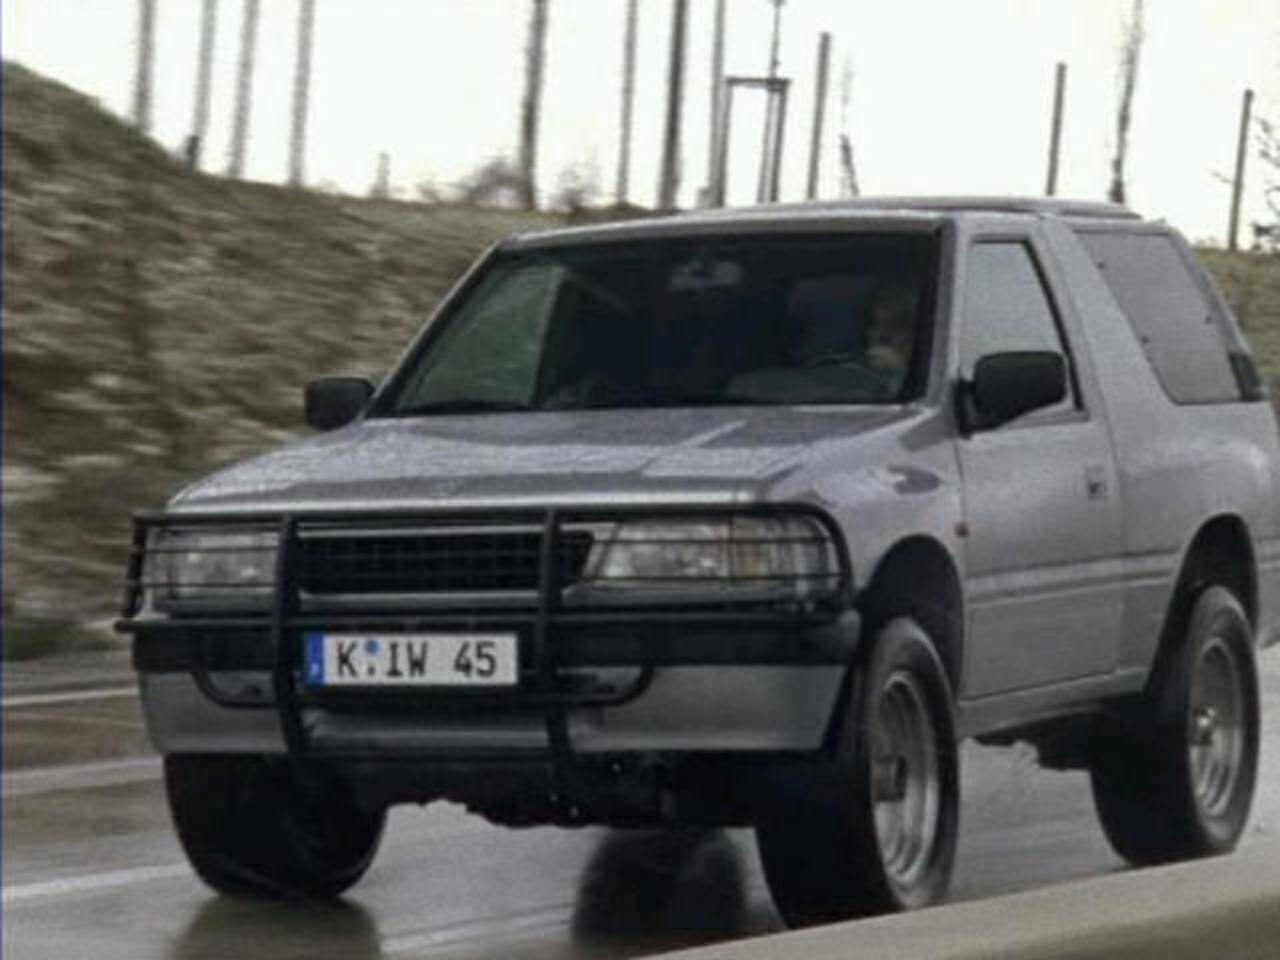 Opel Frontera 22 Sport. View Download Wallpaper. 640x480. Comments